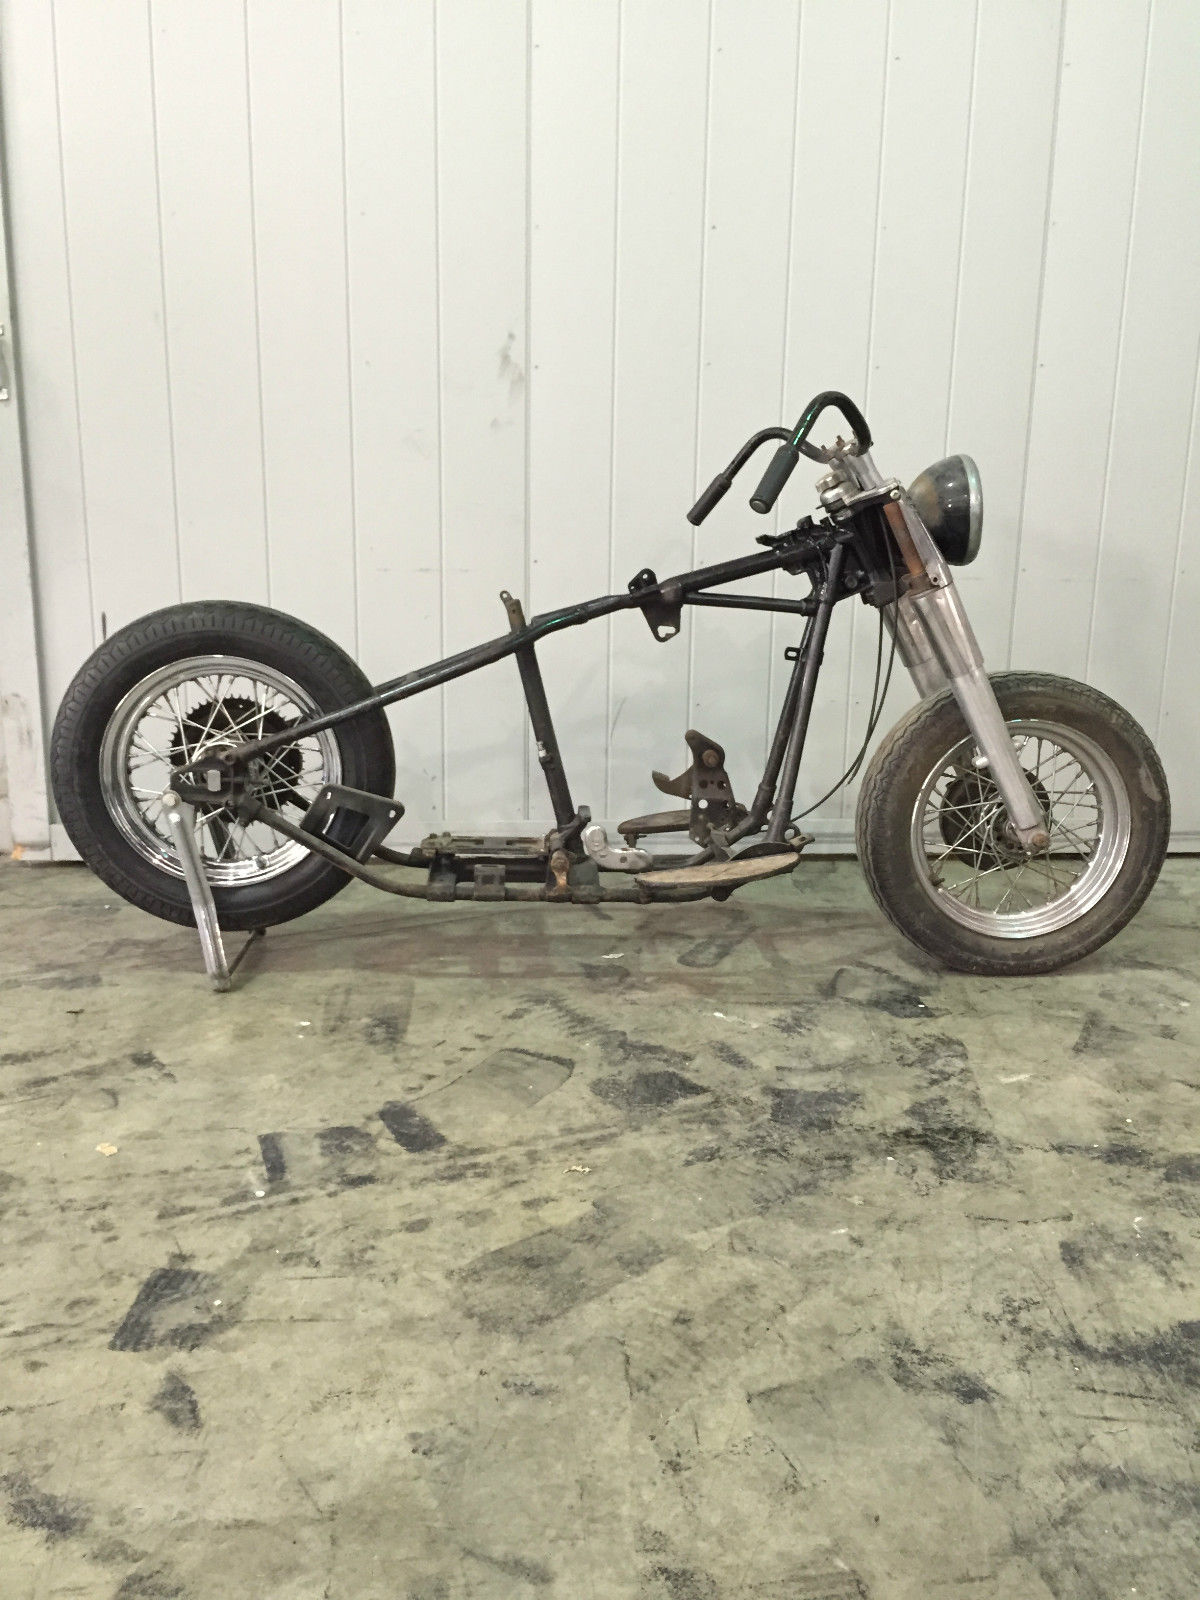 panhead wiring diagram 1954 1955 1956 1957    panhead    rolling chassis original wow     1954 1955 1956 1957    panhead    rolling chassis original wow